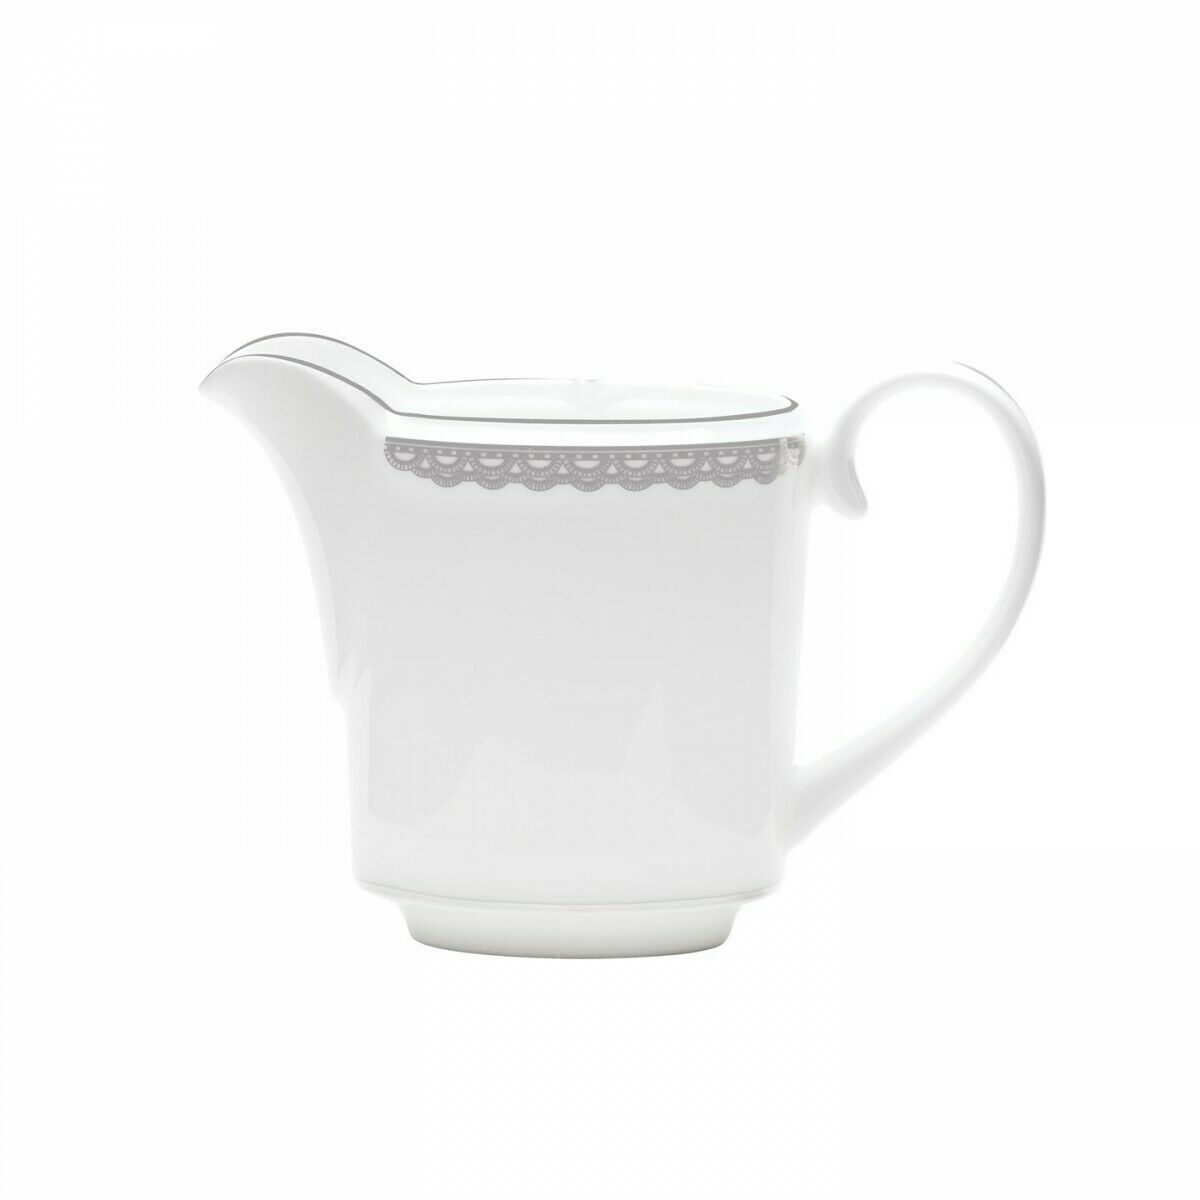 Waterford Lismore Lace Platinum Creamer New with tag #160644 - $92.57